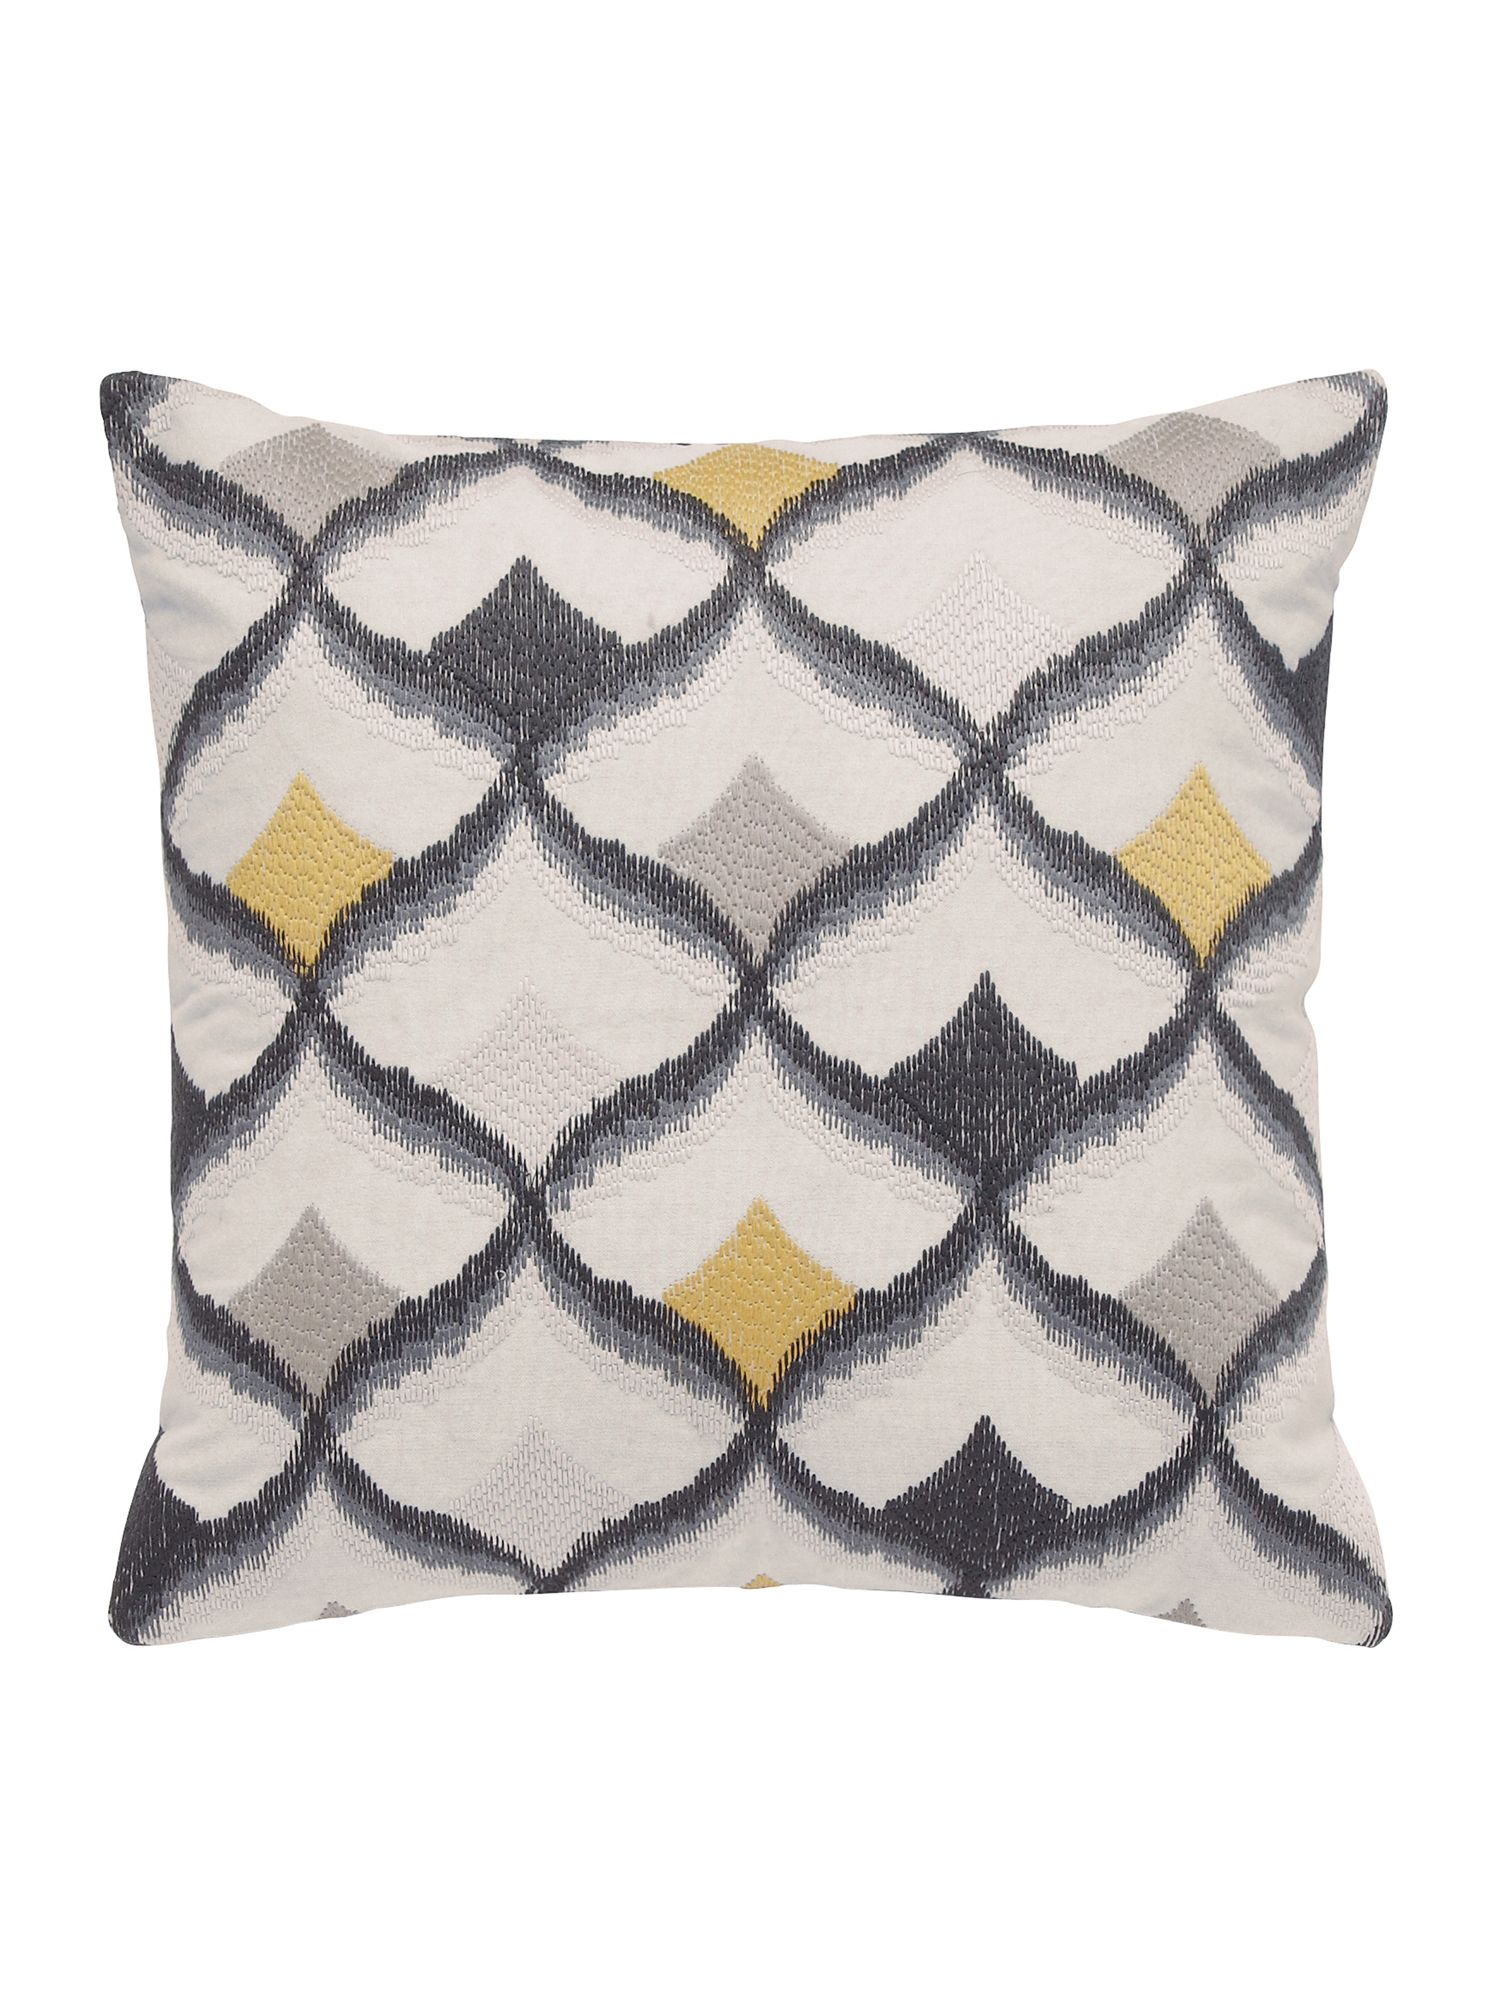 Image of Bedeck 1951 Altana cushion 40X40cm charcoal